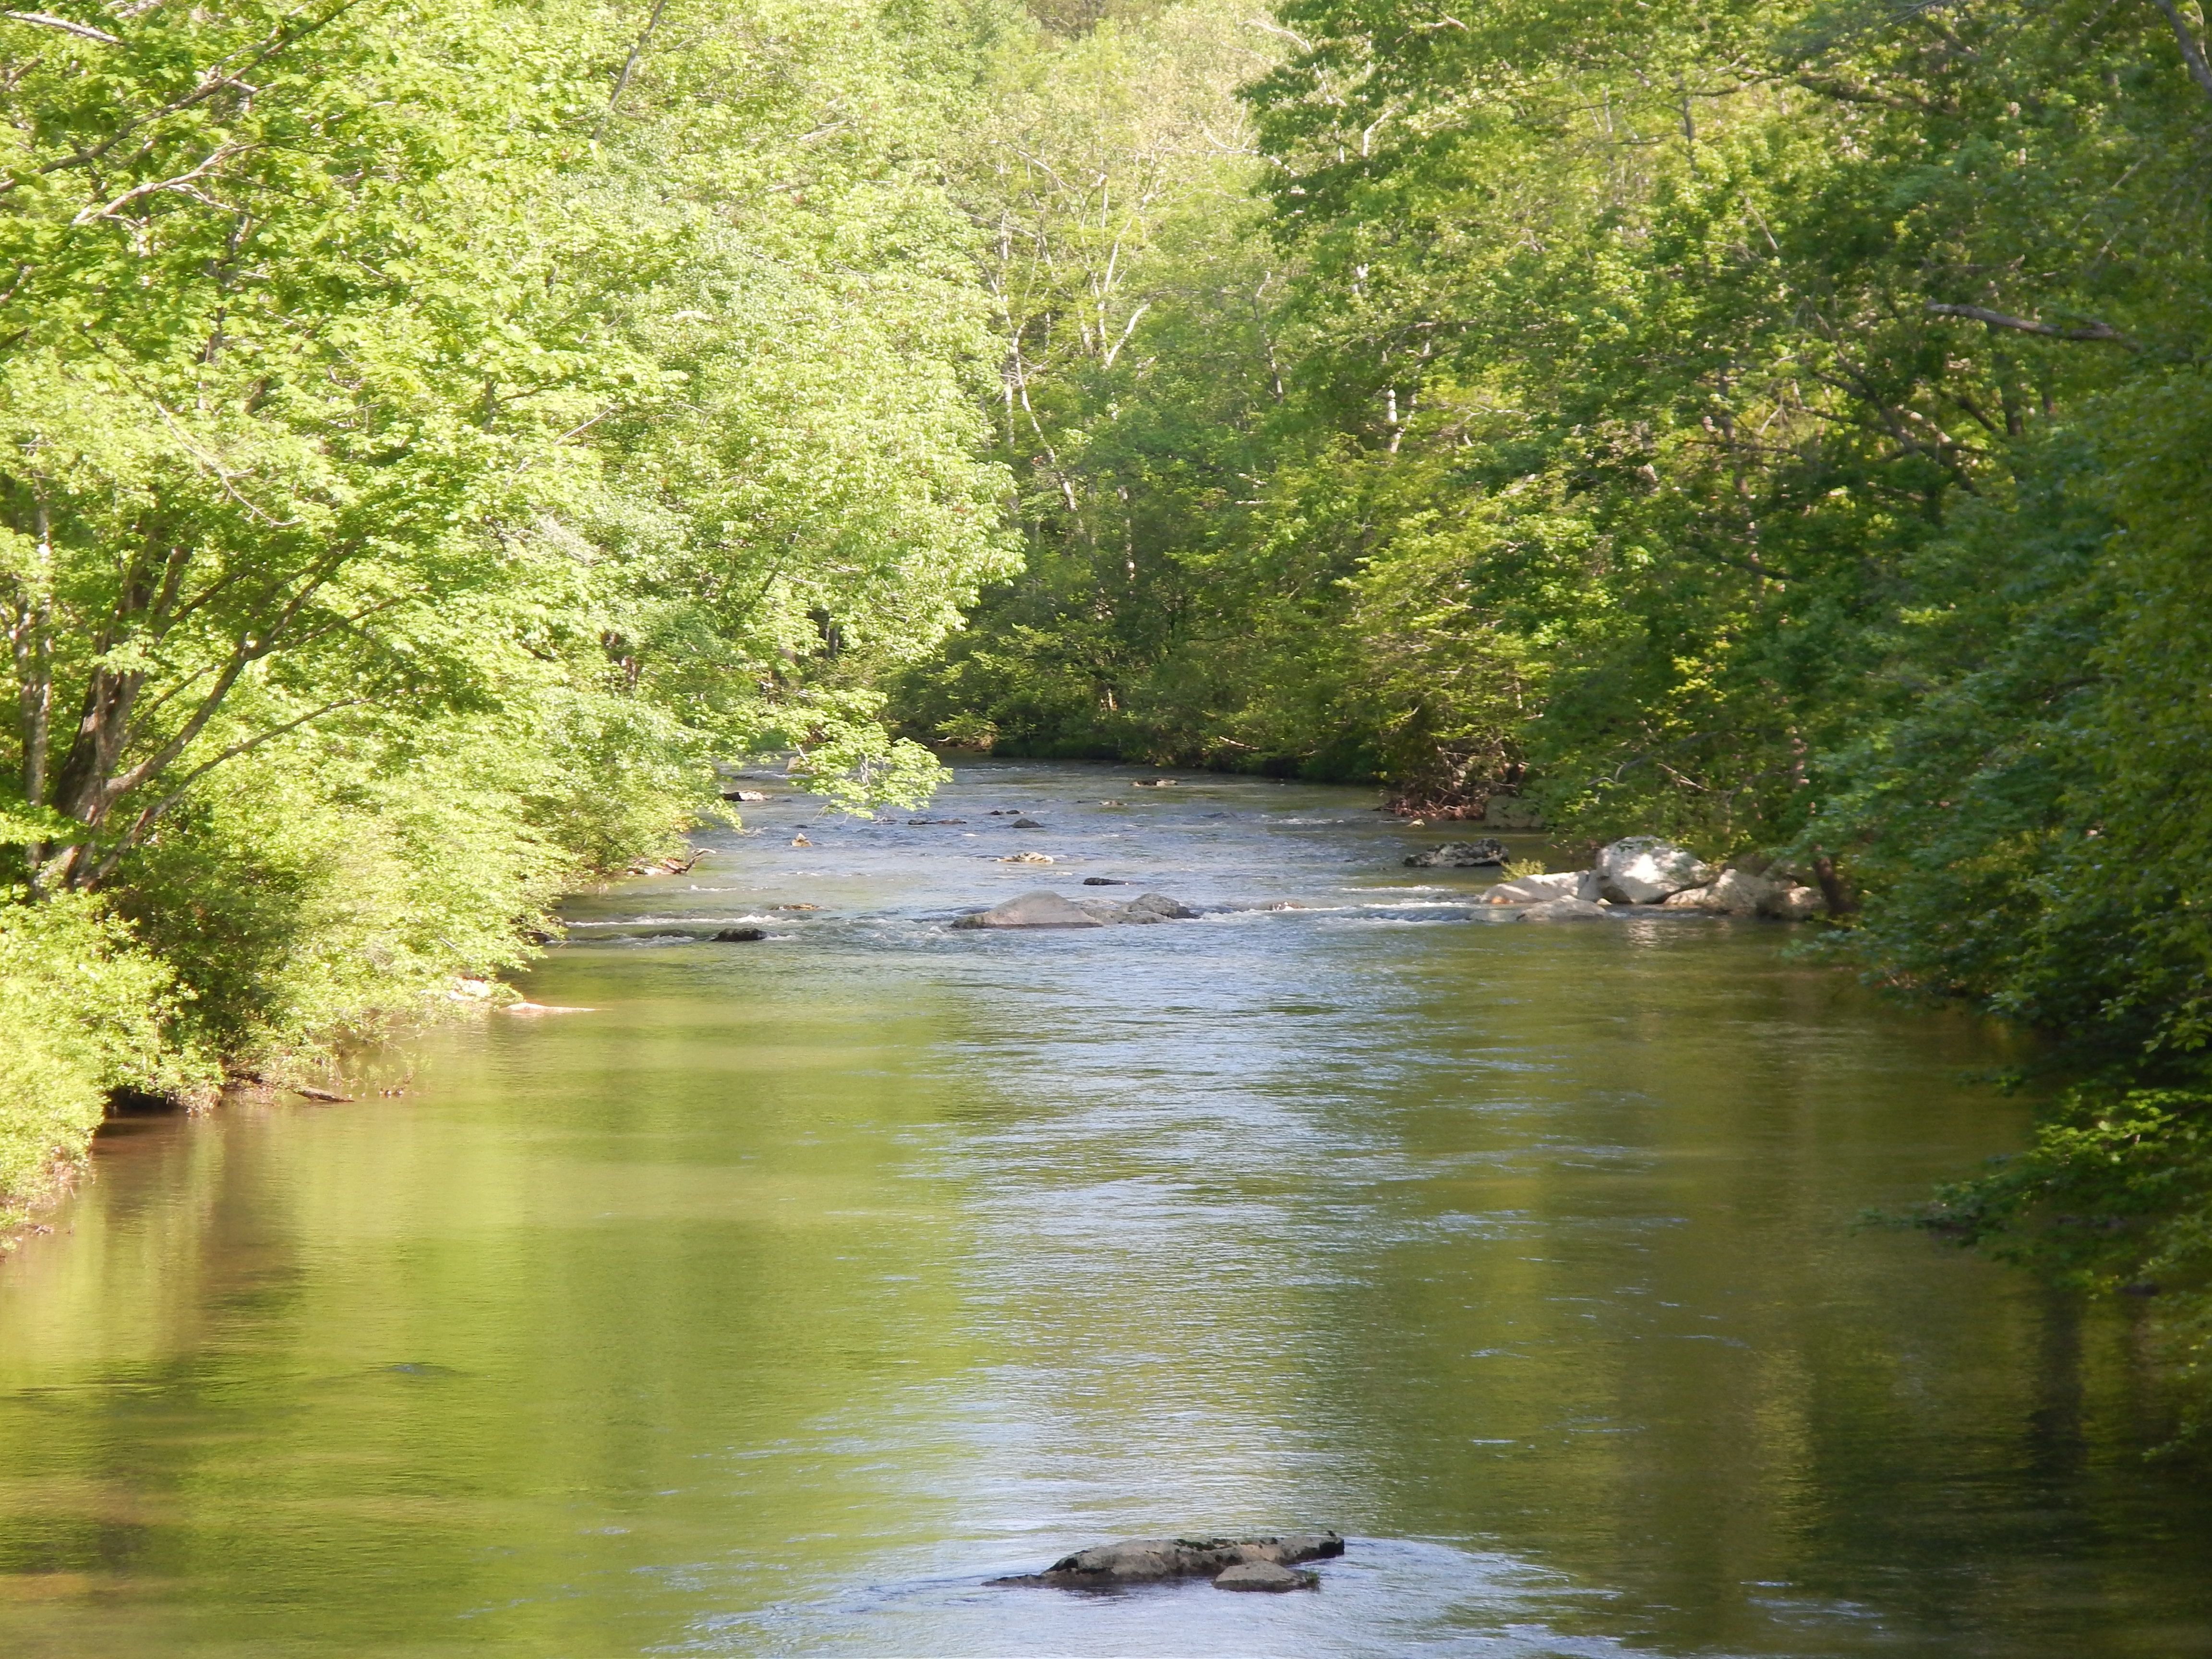 Day 9 - A view downstream as the Appalachian Trail crosses Kimberling Creek in the Jefferson National Forest.